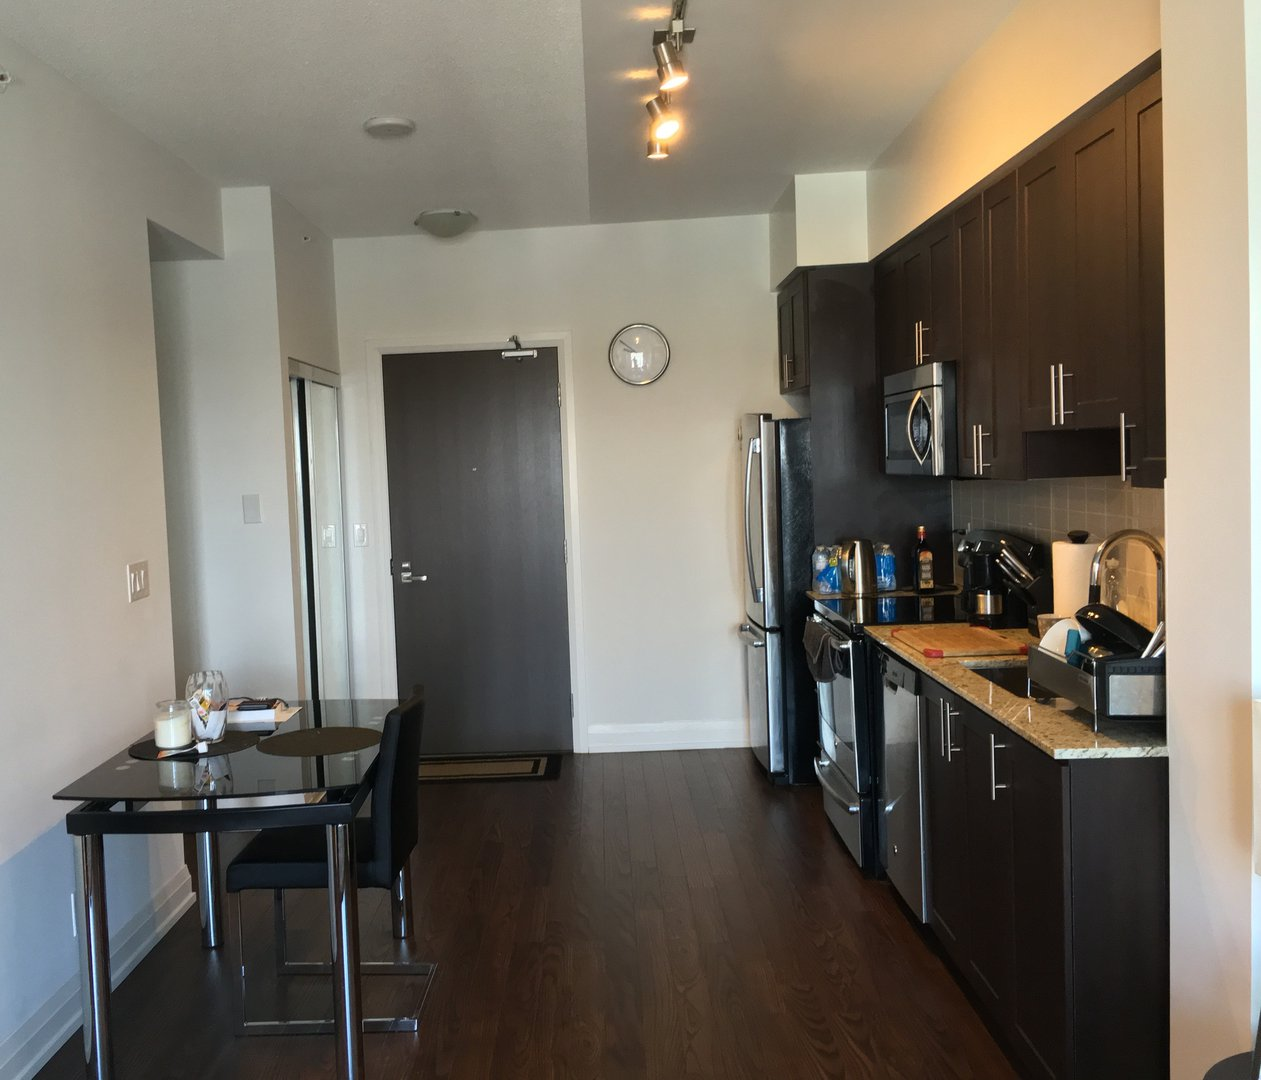 Condo for rent at 7161 Yonge Street, Markham, ON. This is the kitchen with hardwood floor.